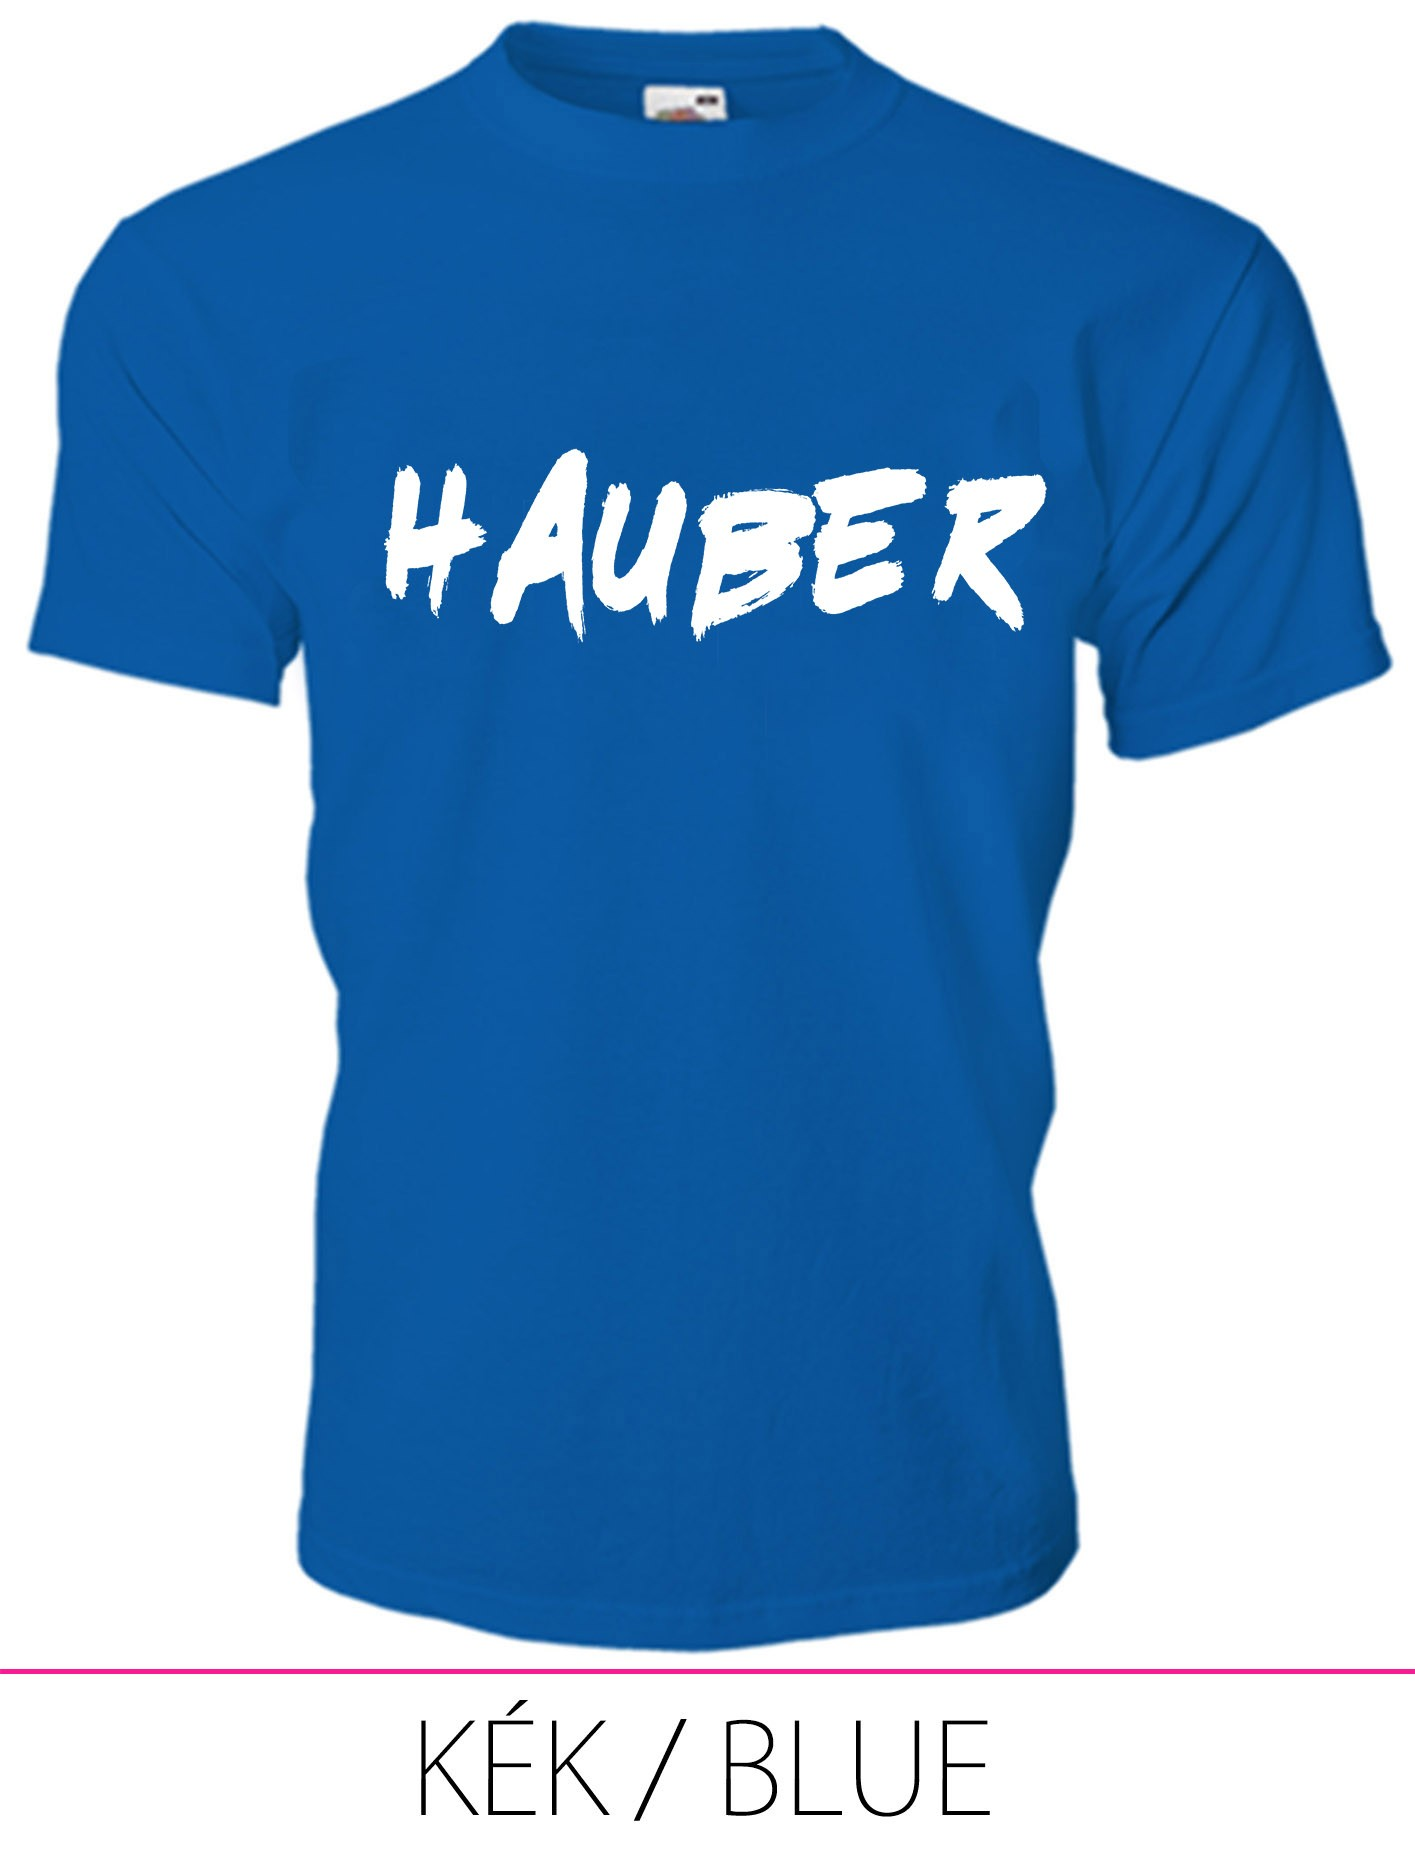 KIDS CREW NECK T-SHIRT HAUBER BLUE